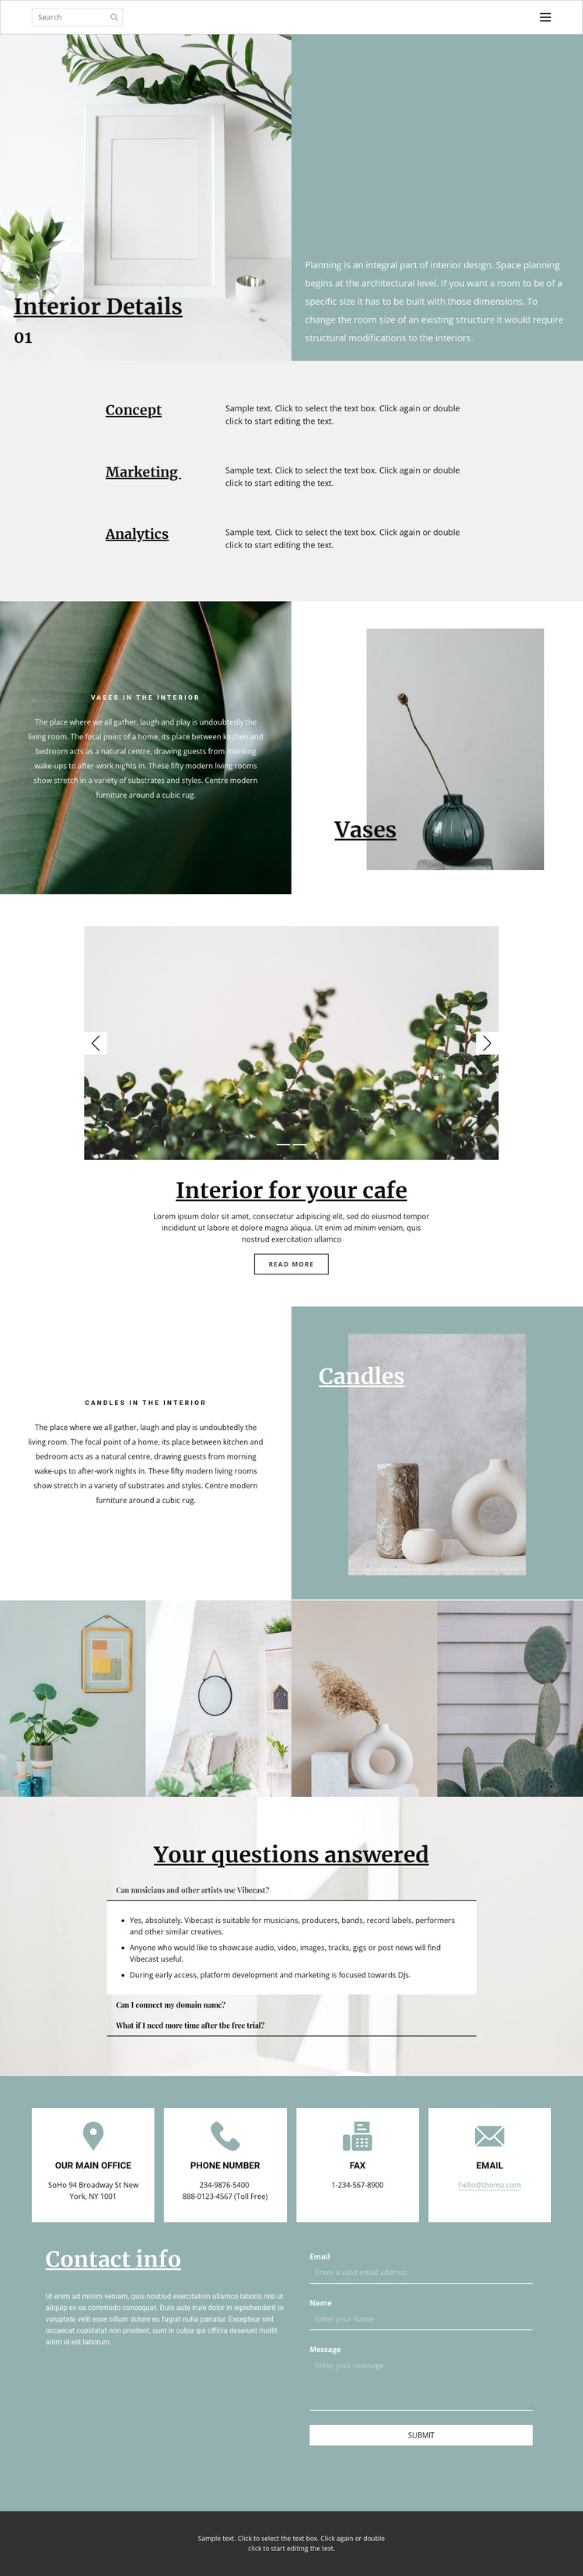 Help in organizing the space at home Website Builder Software